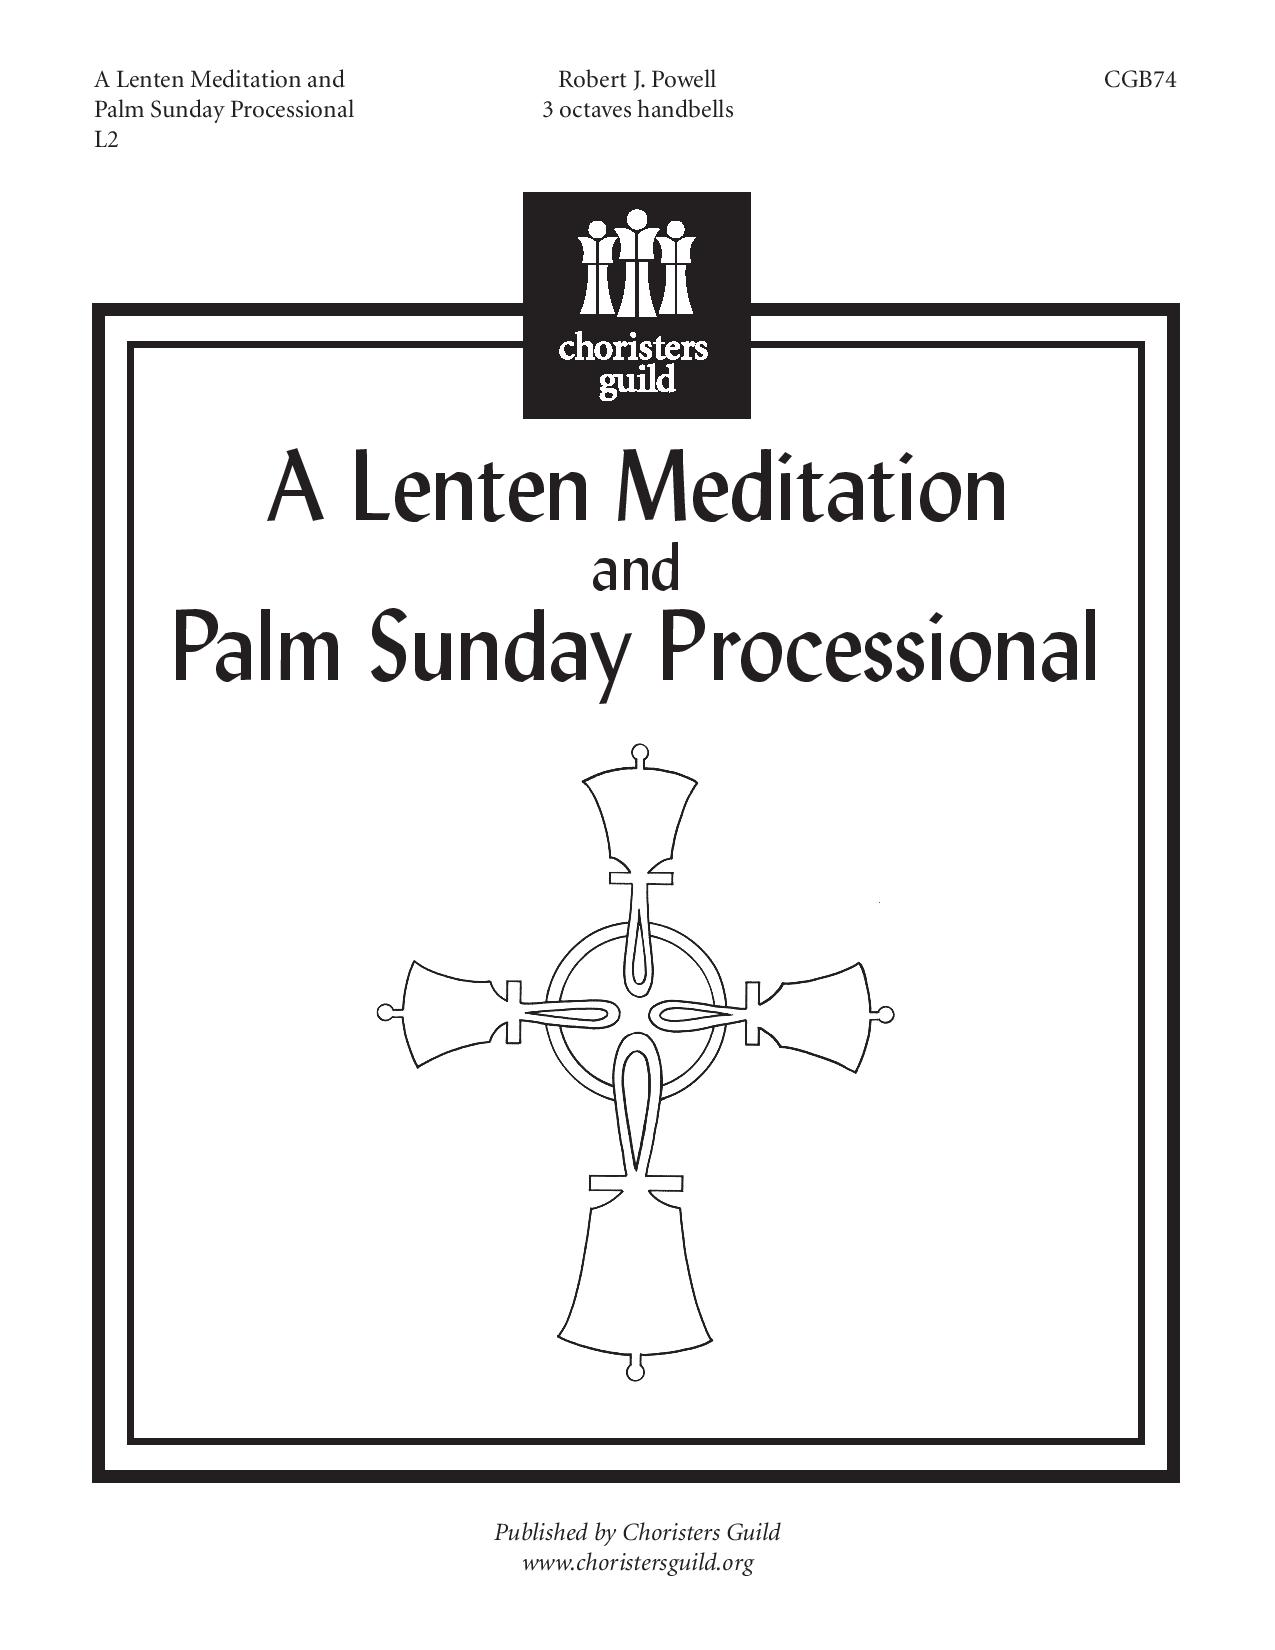 A Lenten Meditation and Palm Sunday Processional